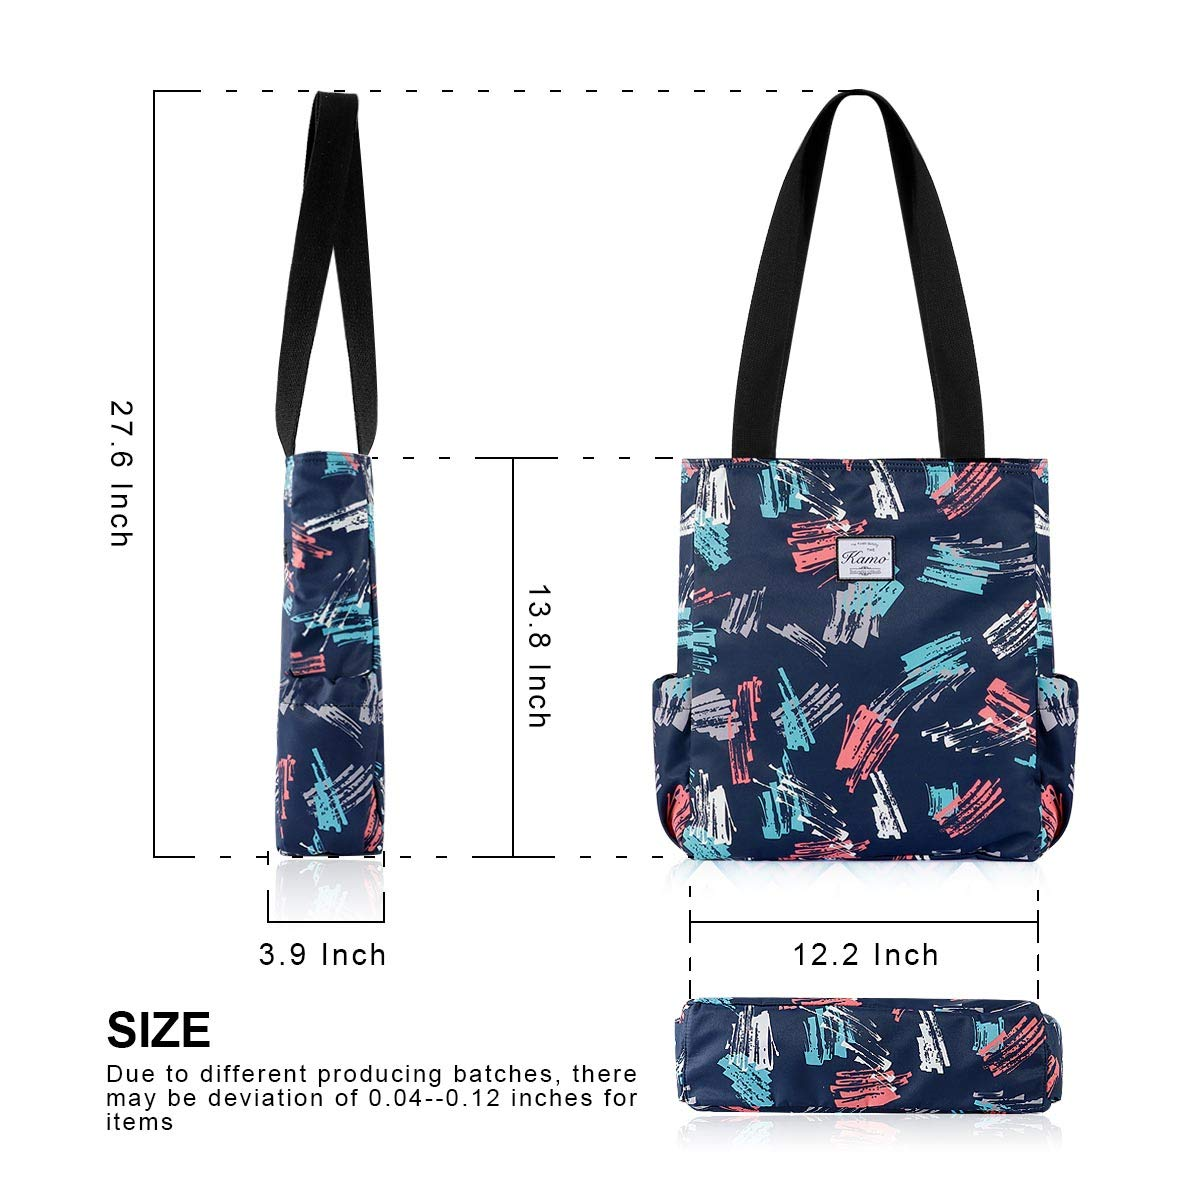 Kamo Floral Tote Bag Waterproof Lightweight Handbags Travel Shoulder Bag for Hiking Yoga Gym Swimming Travel Beach